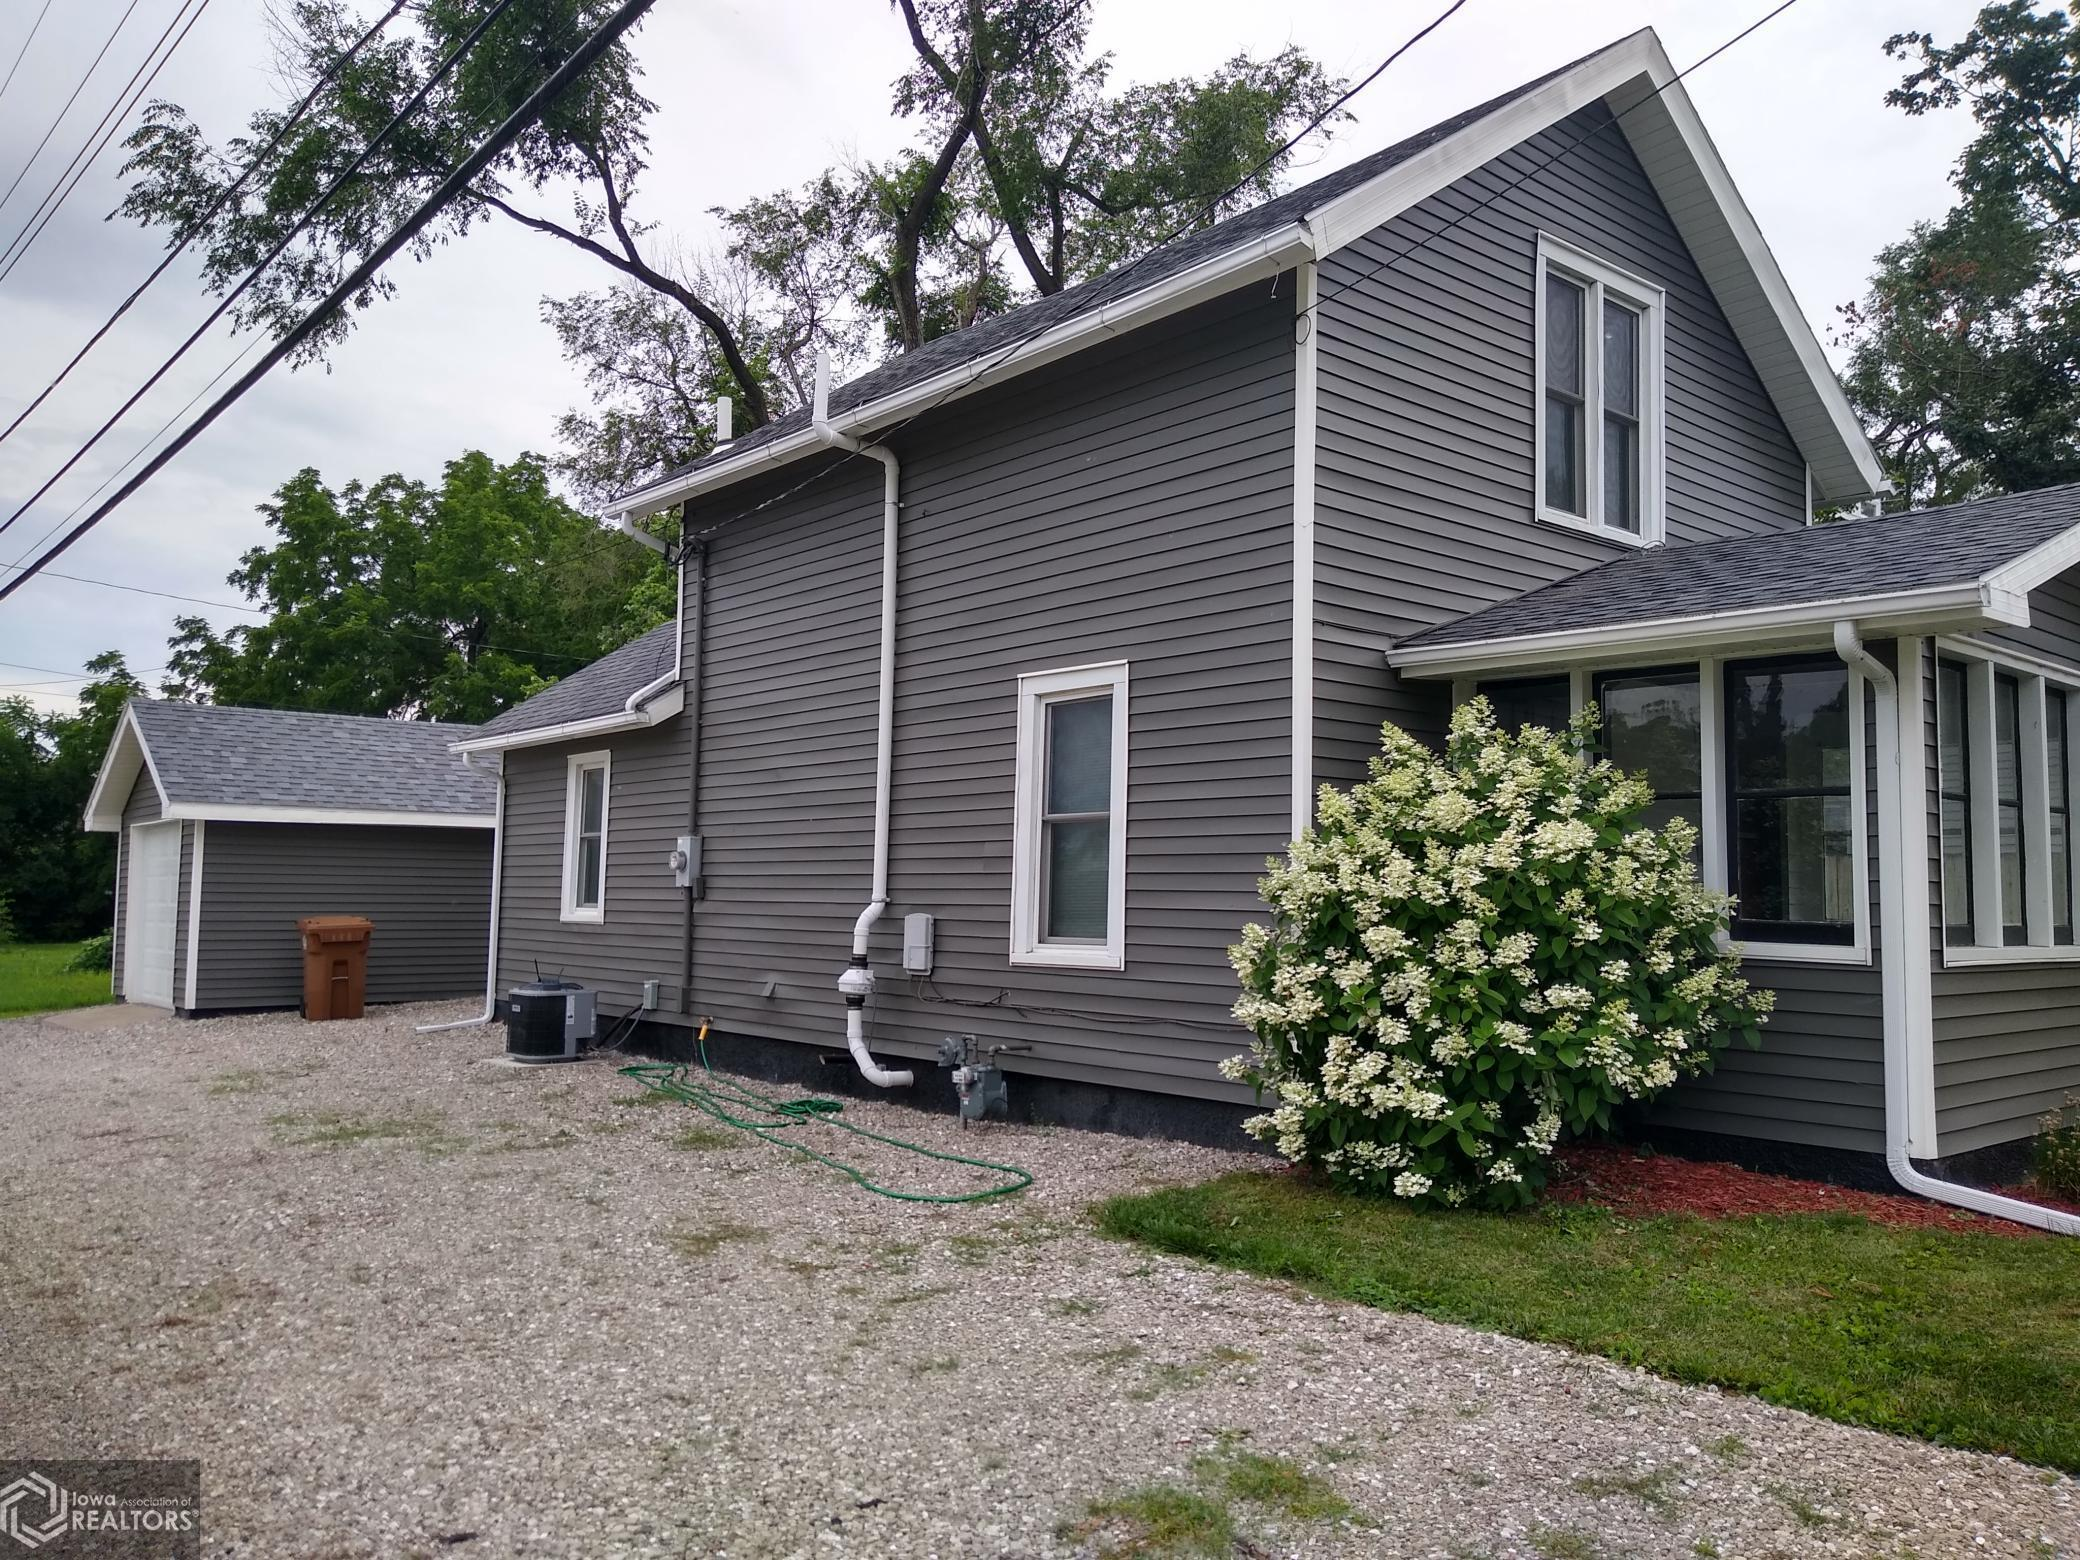 1212 3rd, Grinnell, Iowa 50112-2115, 2 Bedrooms Bedrooms, ,1 BathroomBathrooms,Single Family,For Sale,3rd,6027163